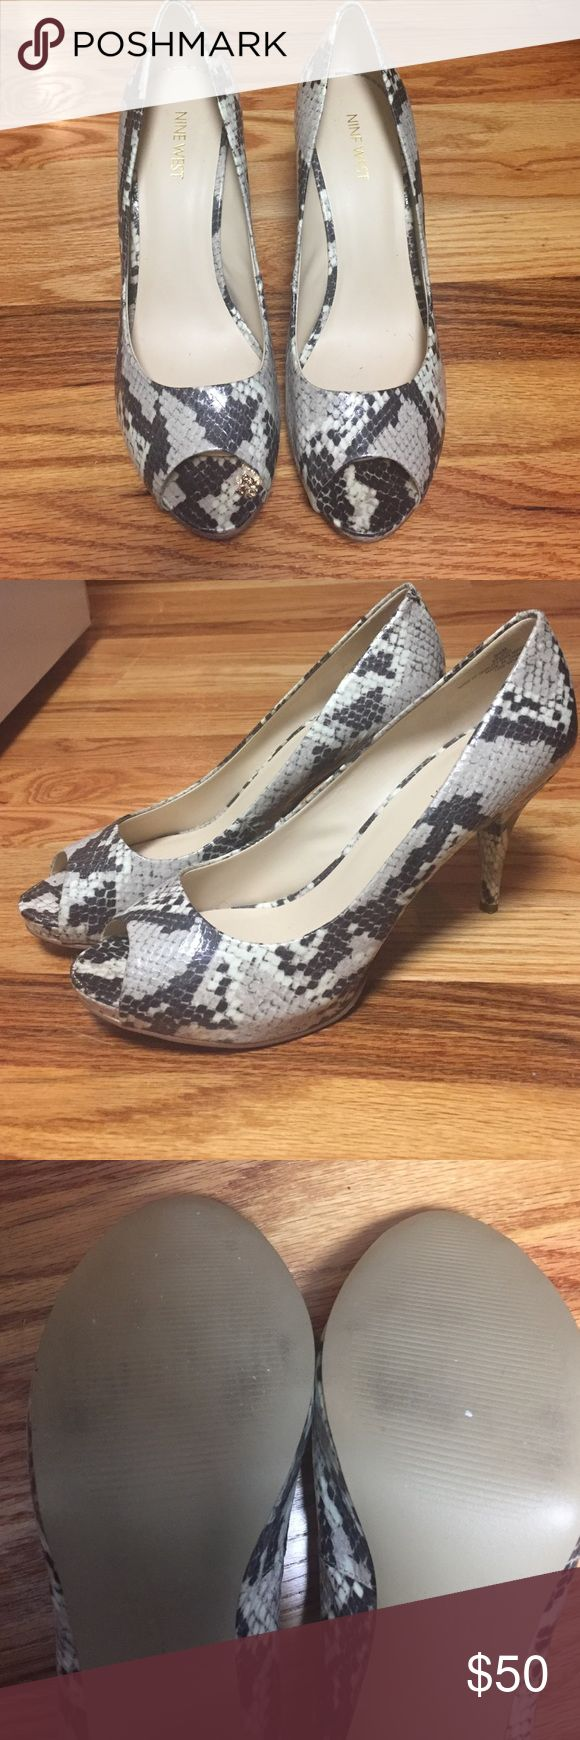 Camya Gray And White, Snakeskin Platforms Practically brand new Nine West Snake Skin peep toe platform heels. One worn twice. Shoes Platforms